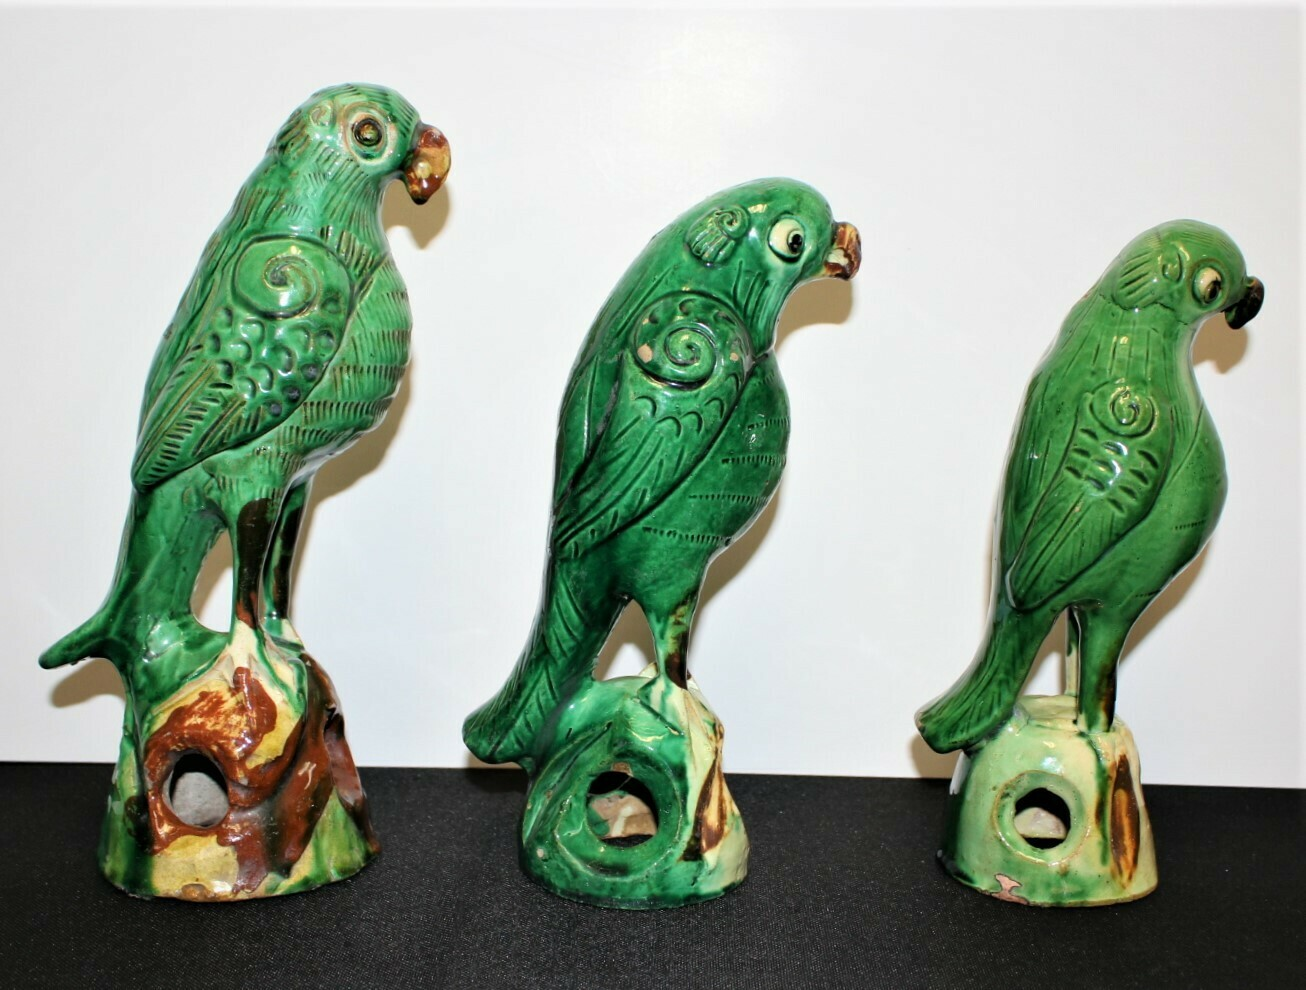 Set of 3 Chinese Green Parrot Sancai Roof Tile Glazed Pottery Figures